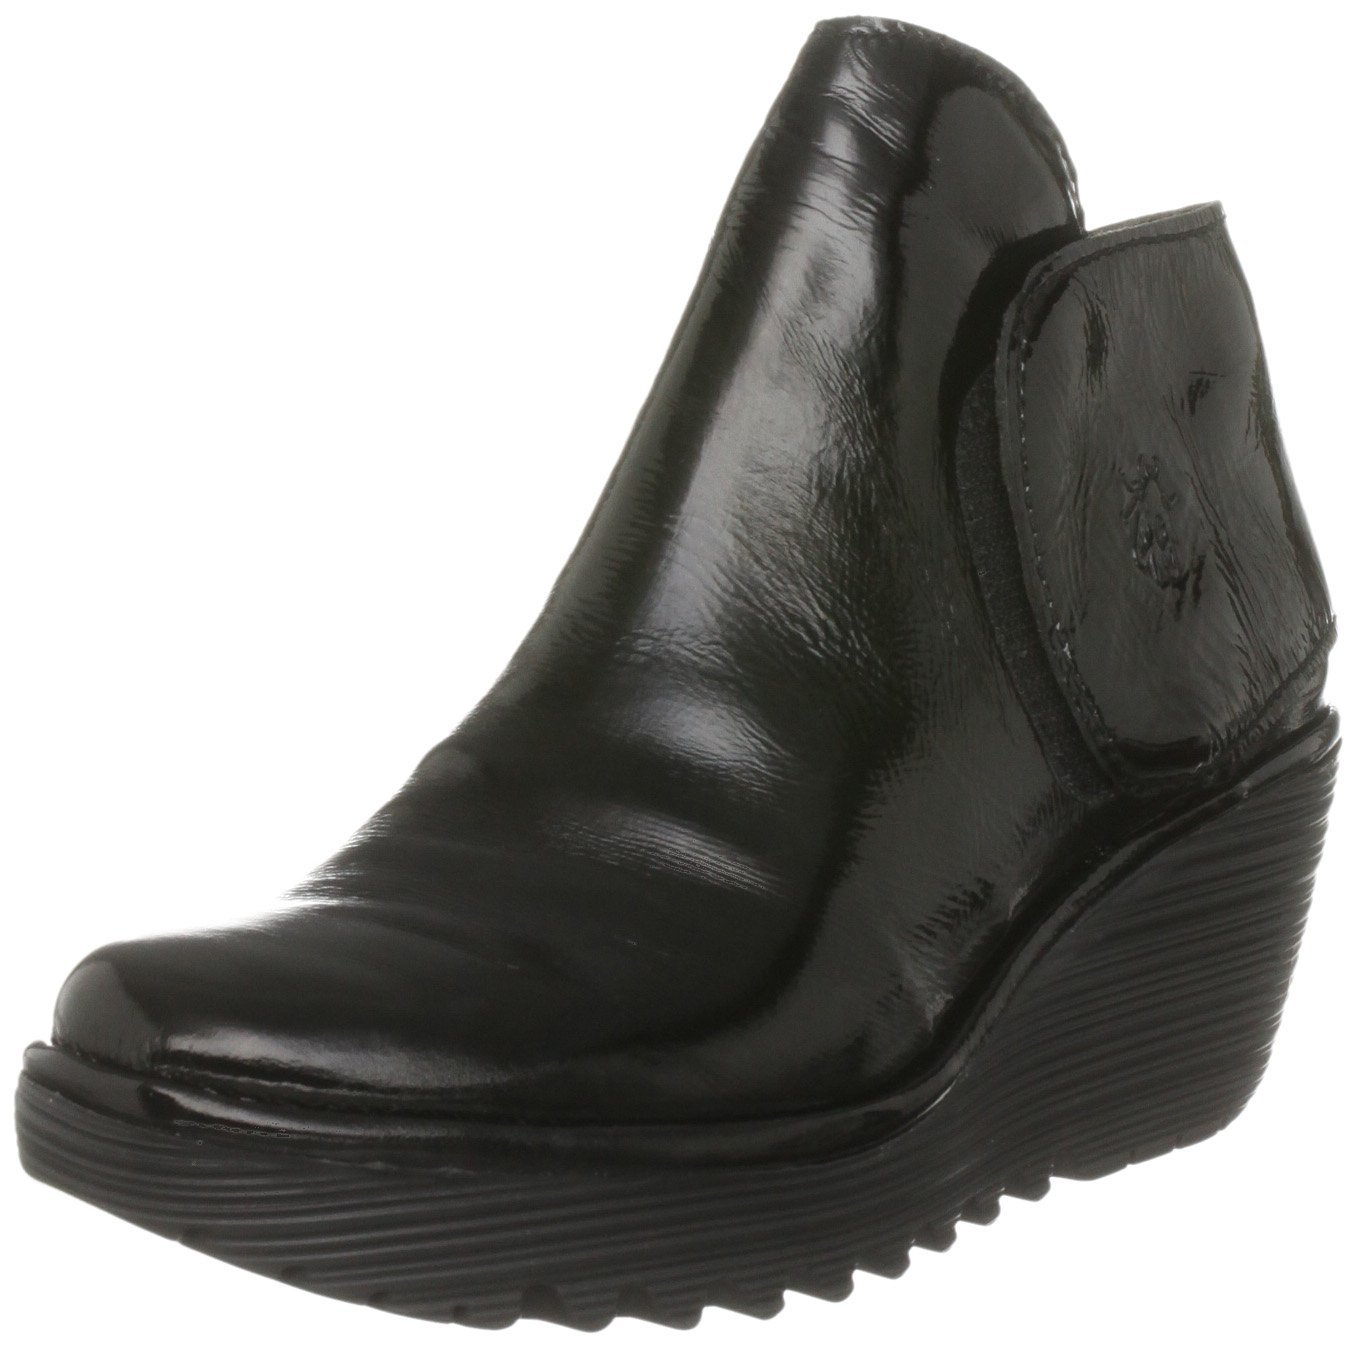 fly yogi black patent leather new womens wedge